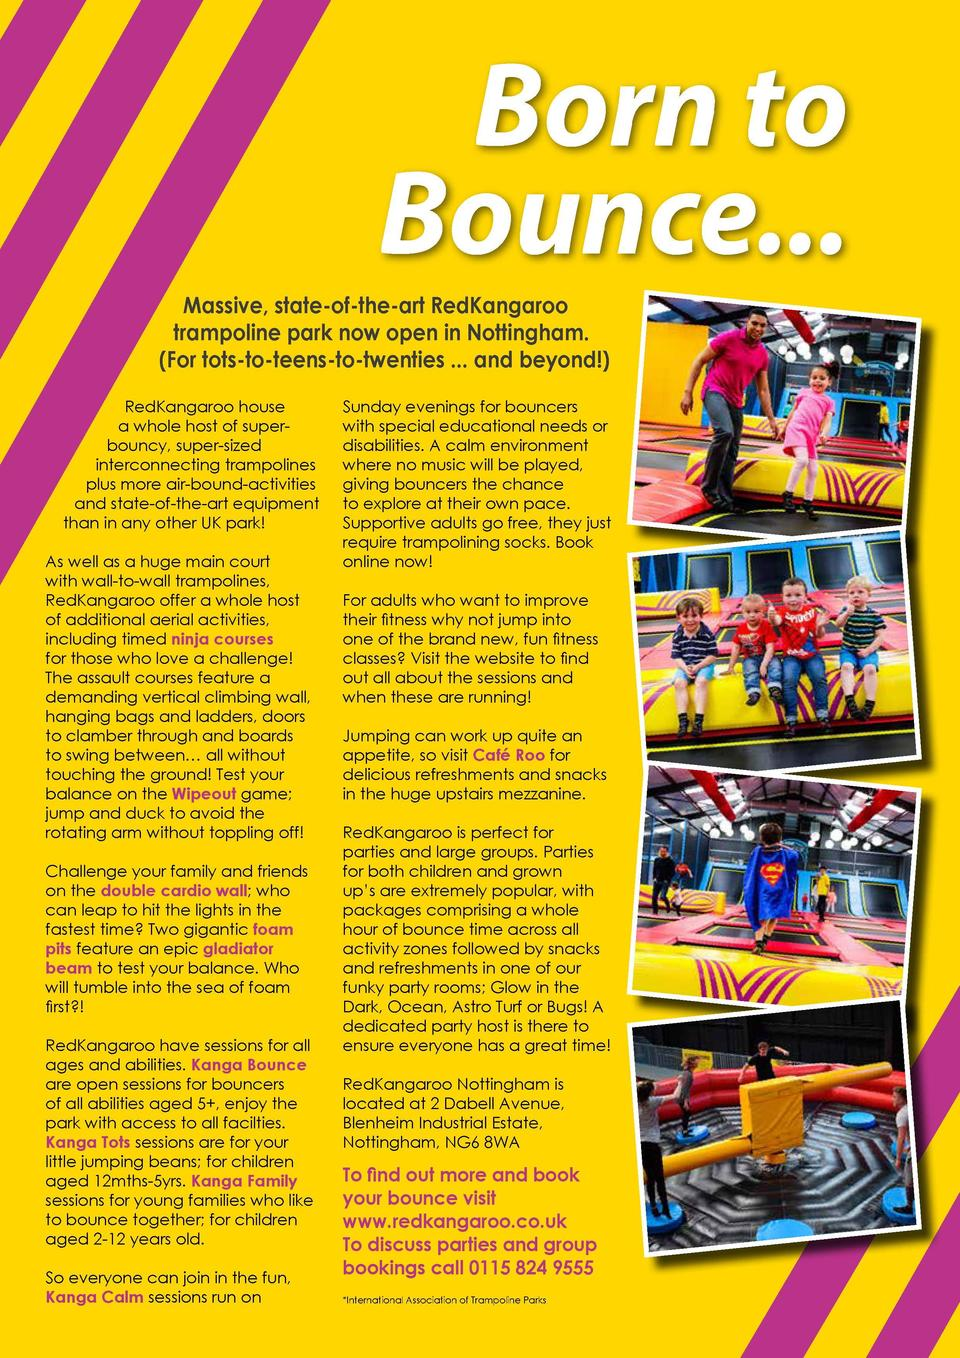 Born to Bounce... Massive, state-of-the-art RedKangaroo trampoline park now open in Nottingham.  For tots-to-teens-to-twen...